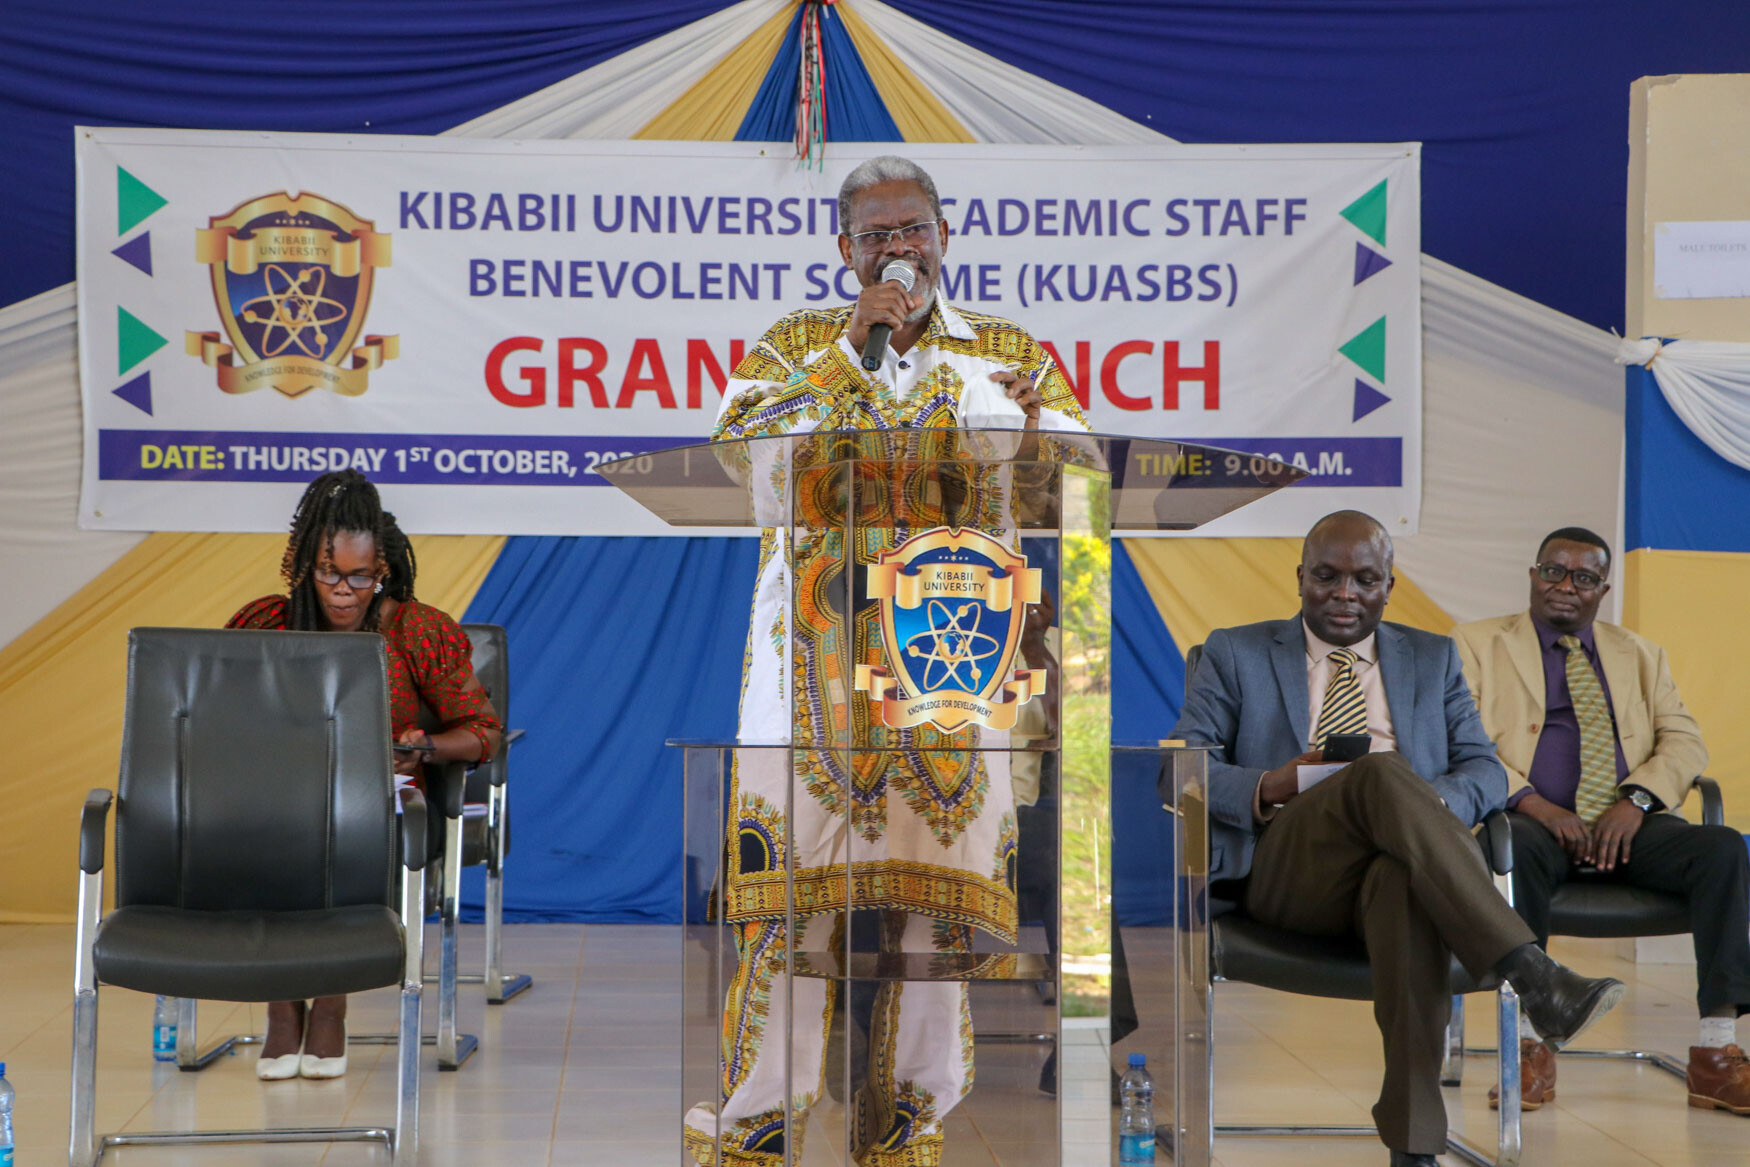 Kibabii University Academic Staff Benevolent Scheme (KUASBS) Grand Launch Gallery